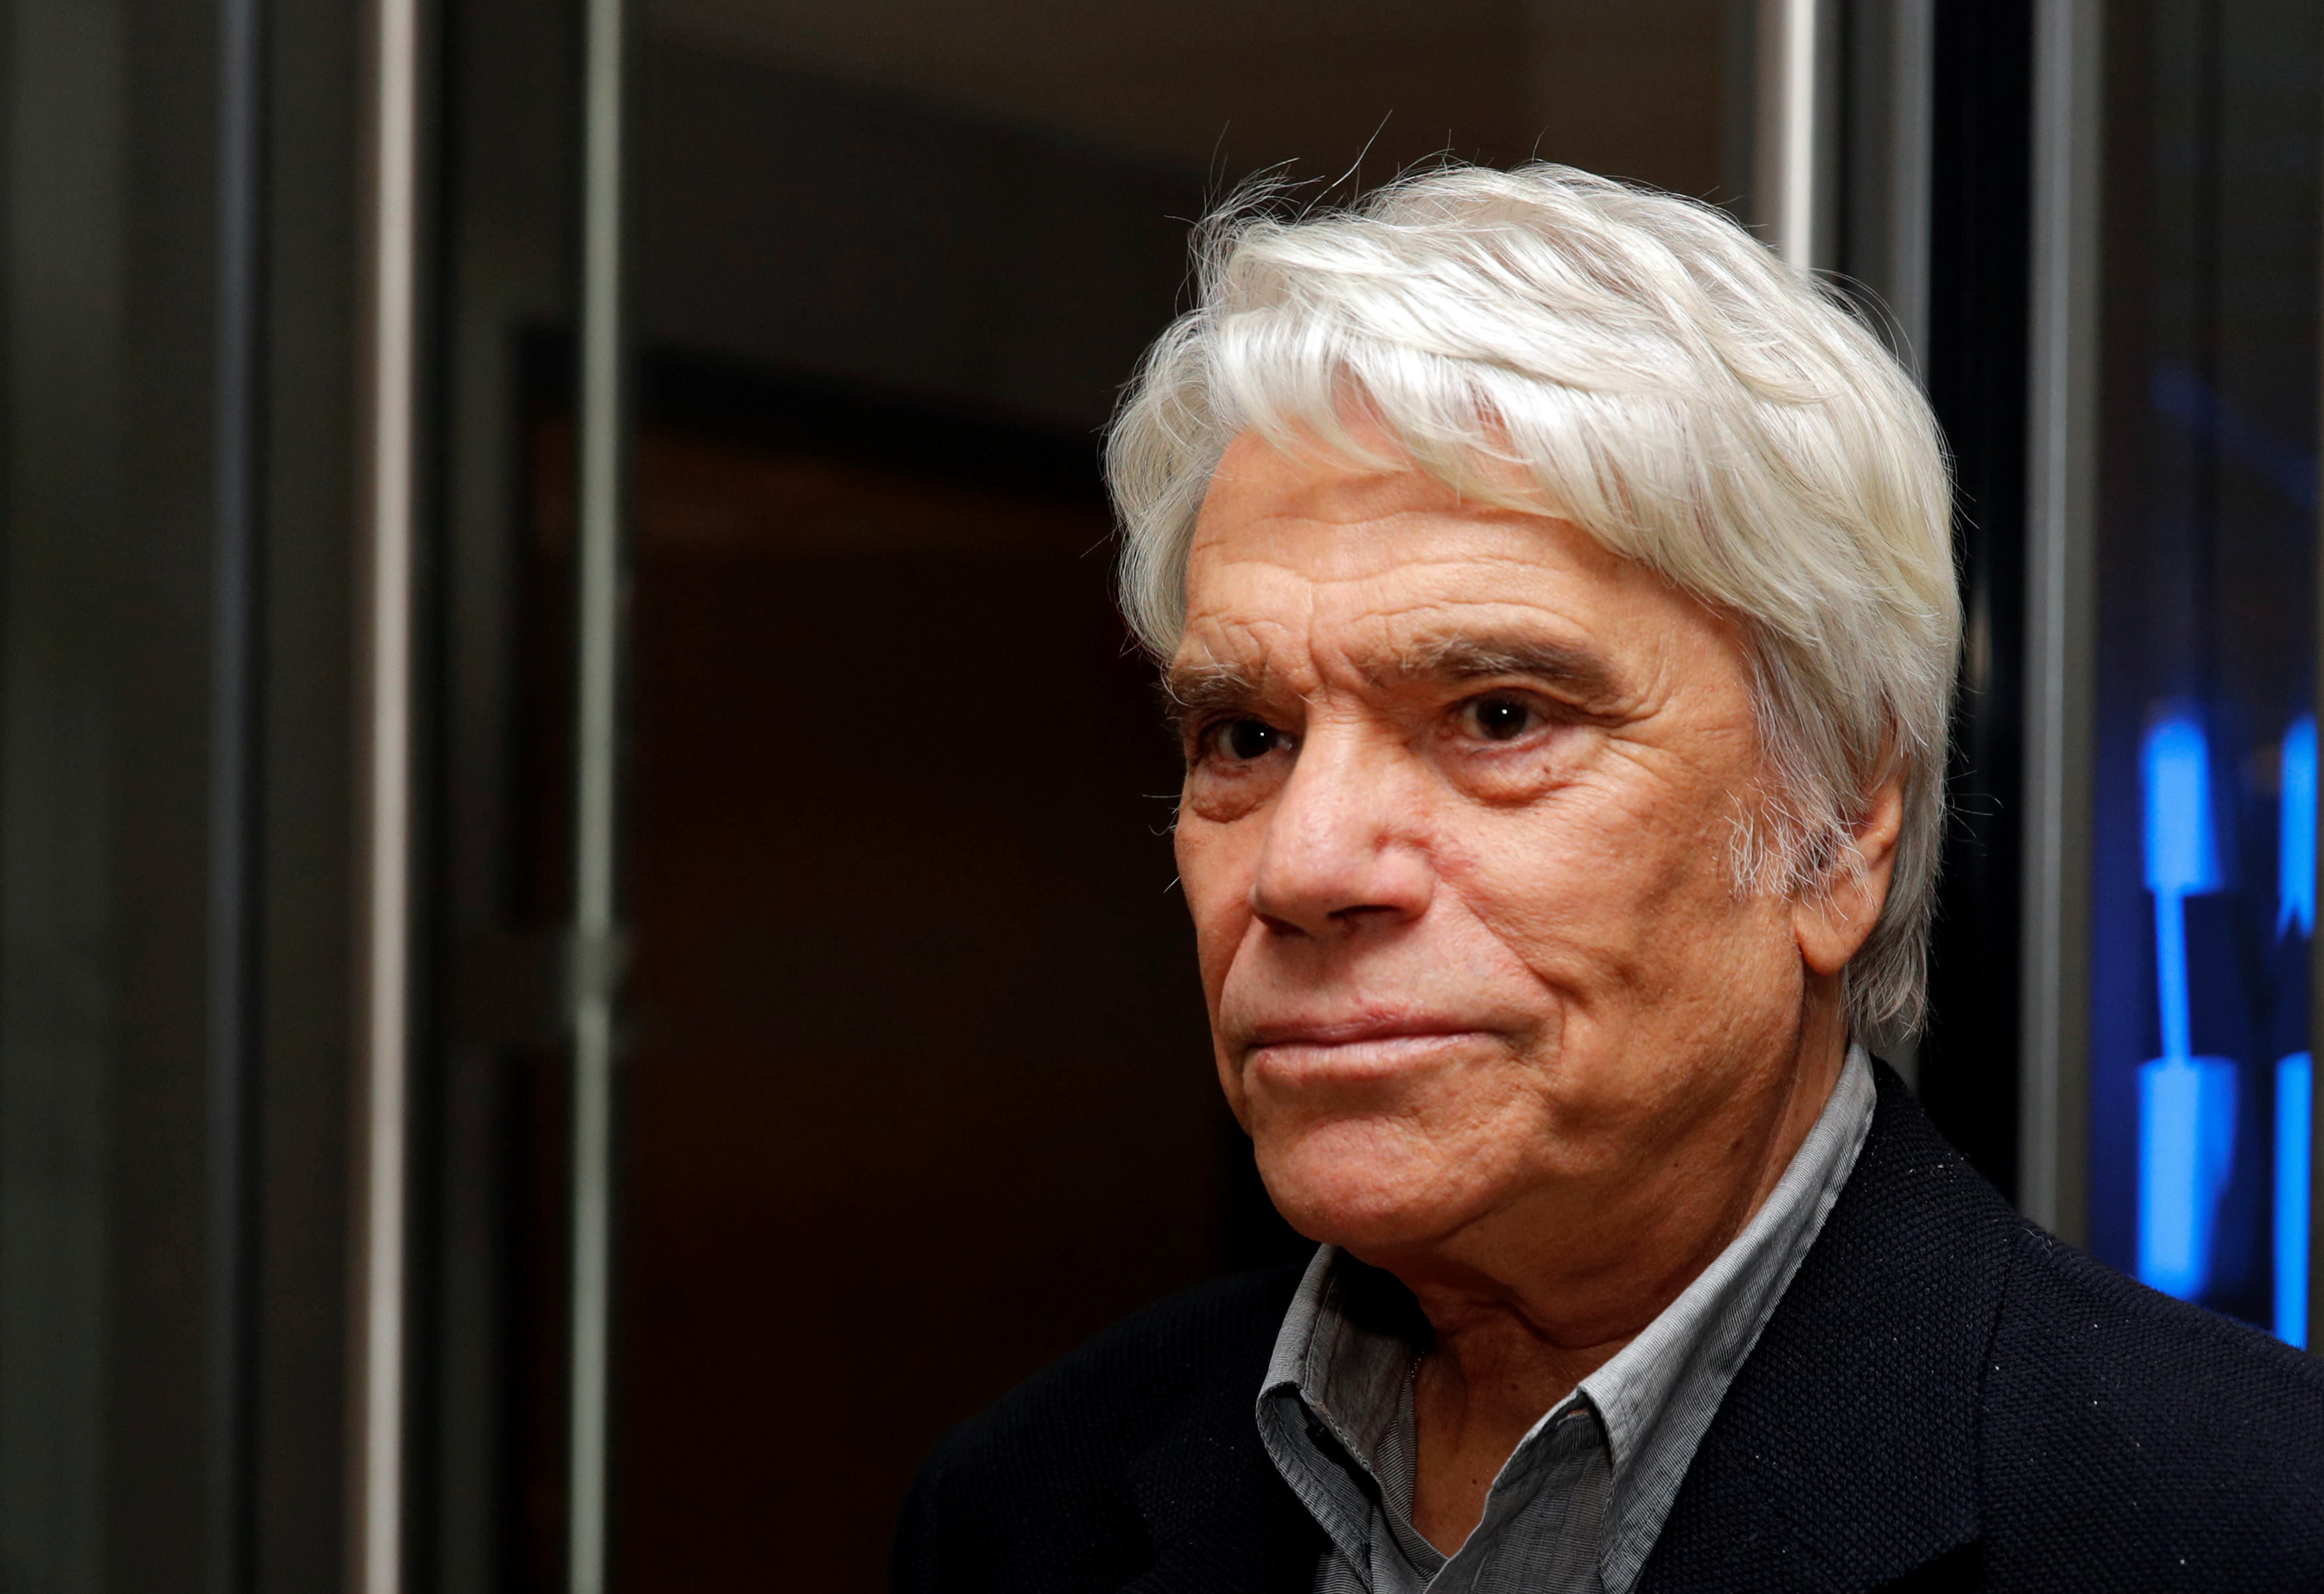 French businessman Bernard Tapie arrives to attend the inauguration of the Altice Campus in Paris in Paris, France, October 9, 2018.  REUTERS/Philippe Wojazer/File Photo